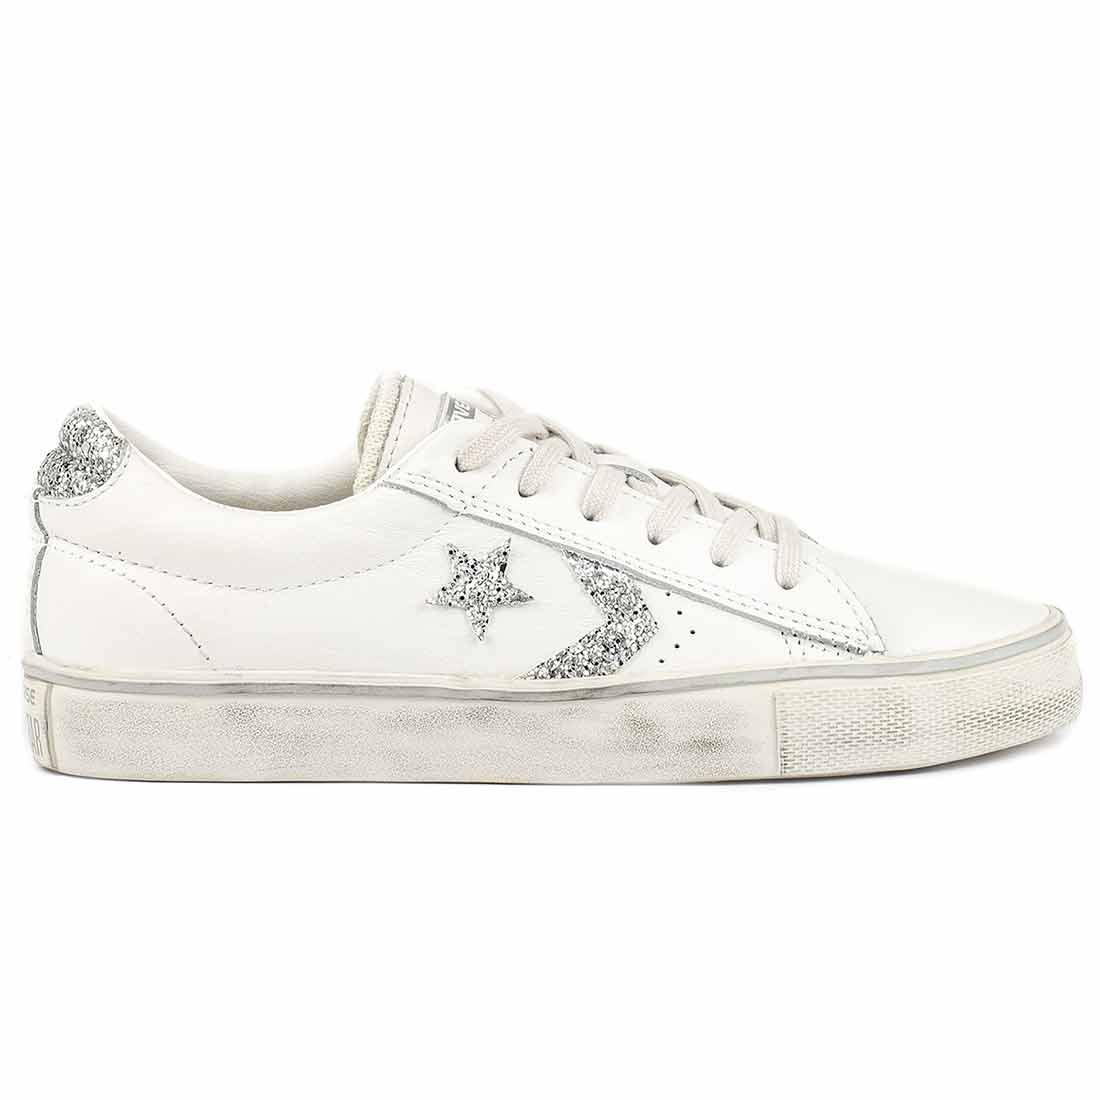 converse all star donna basse bianche